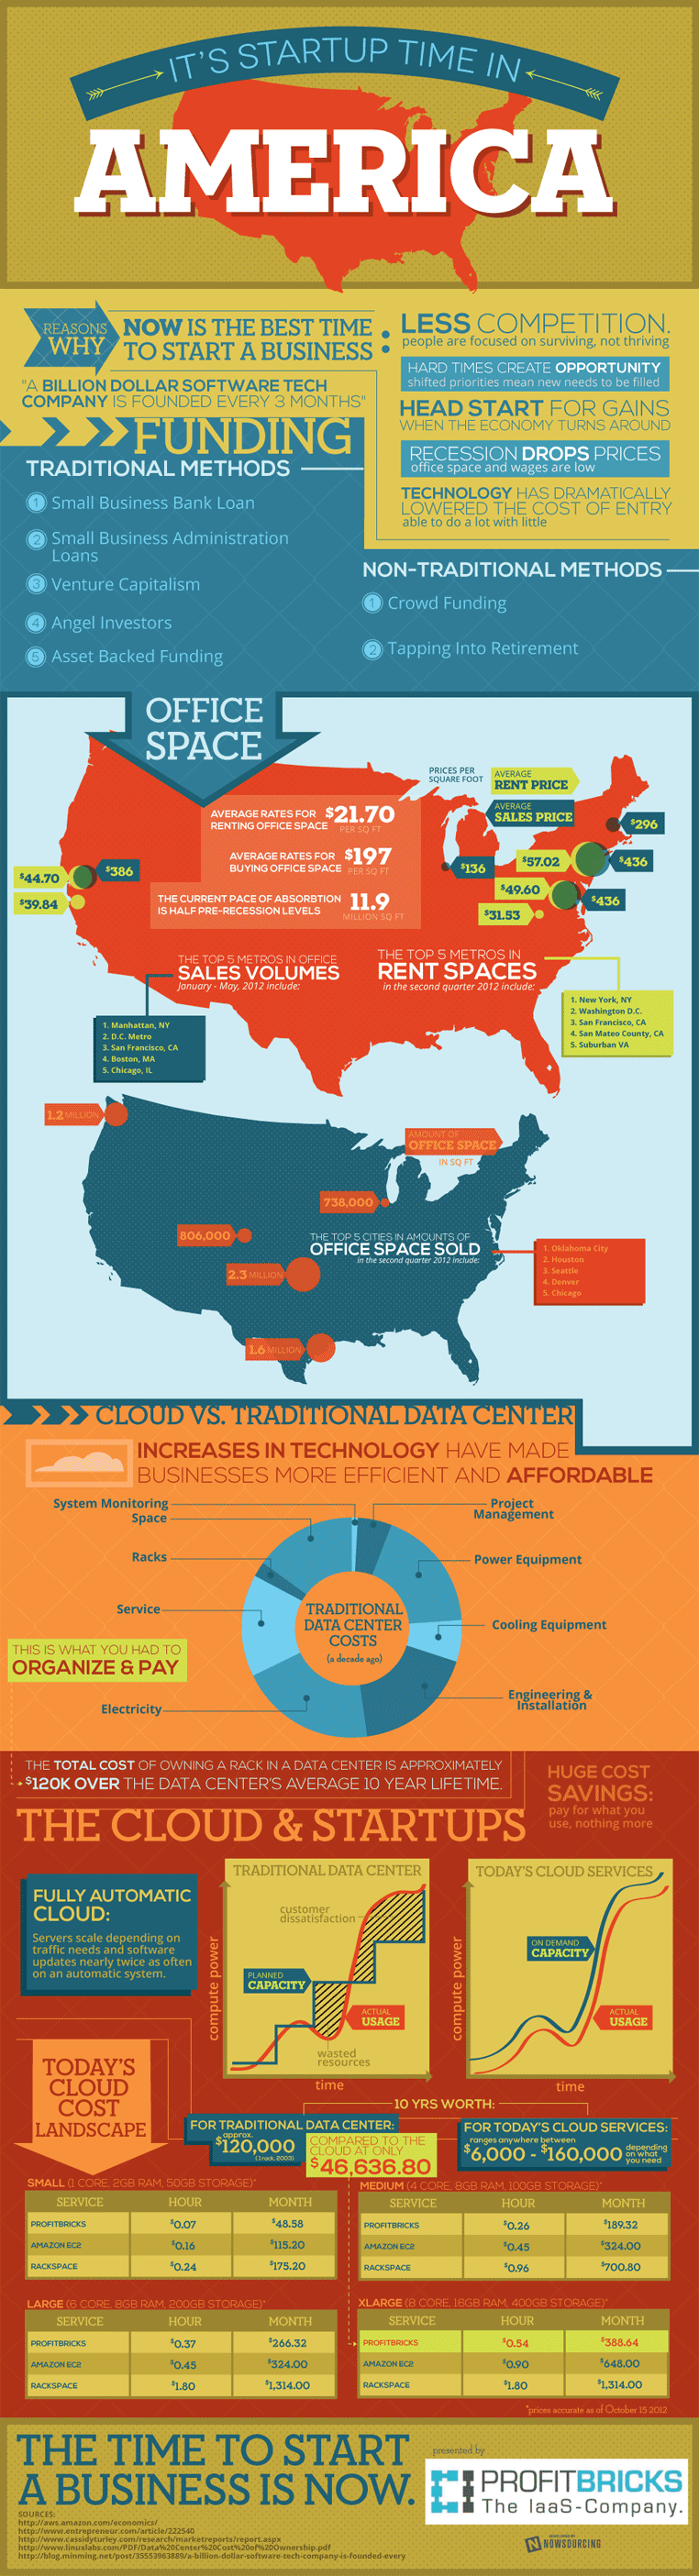 american startup trends infographic